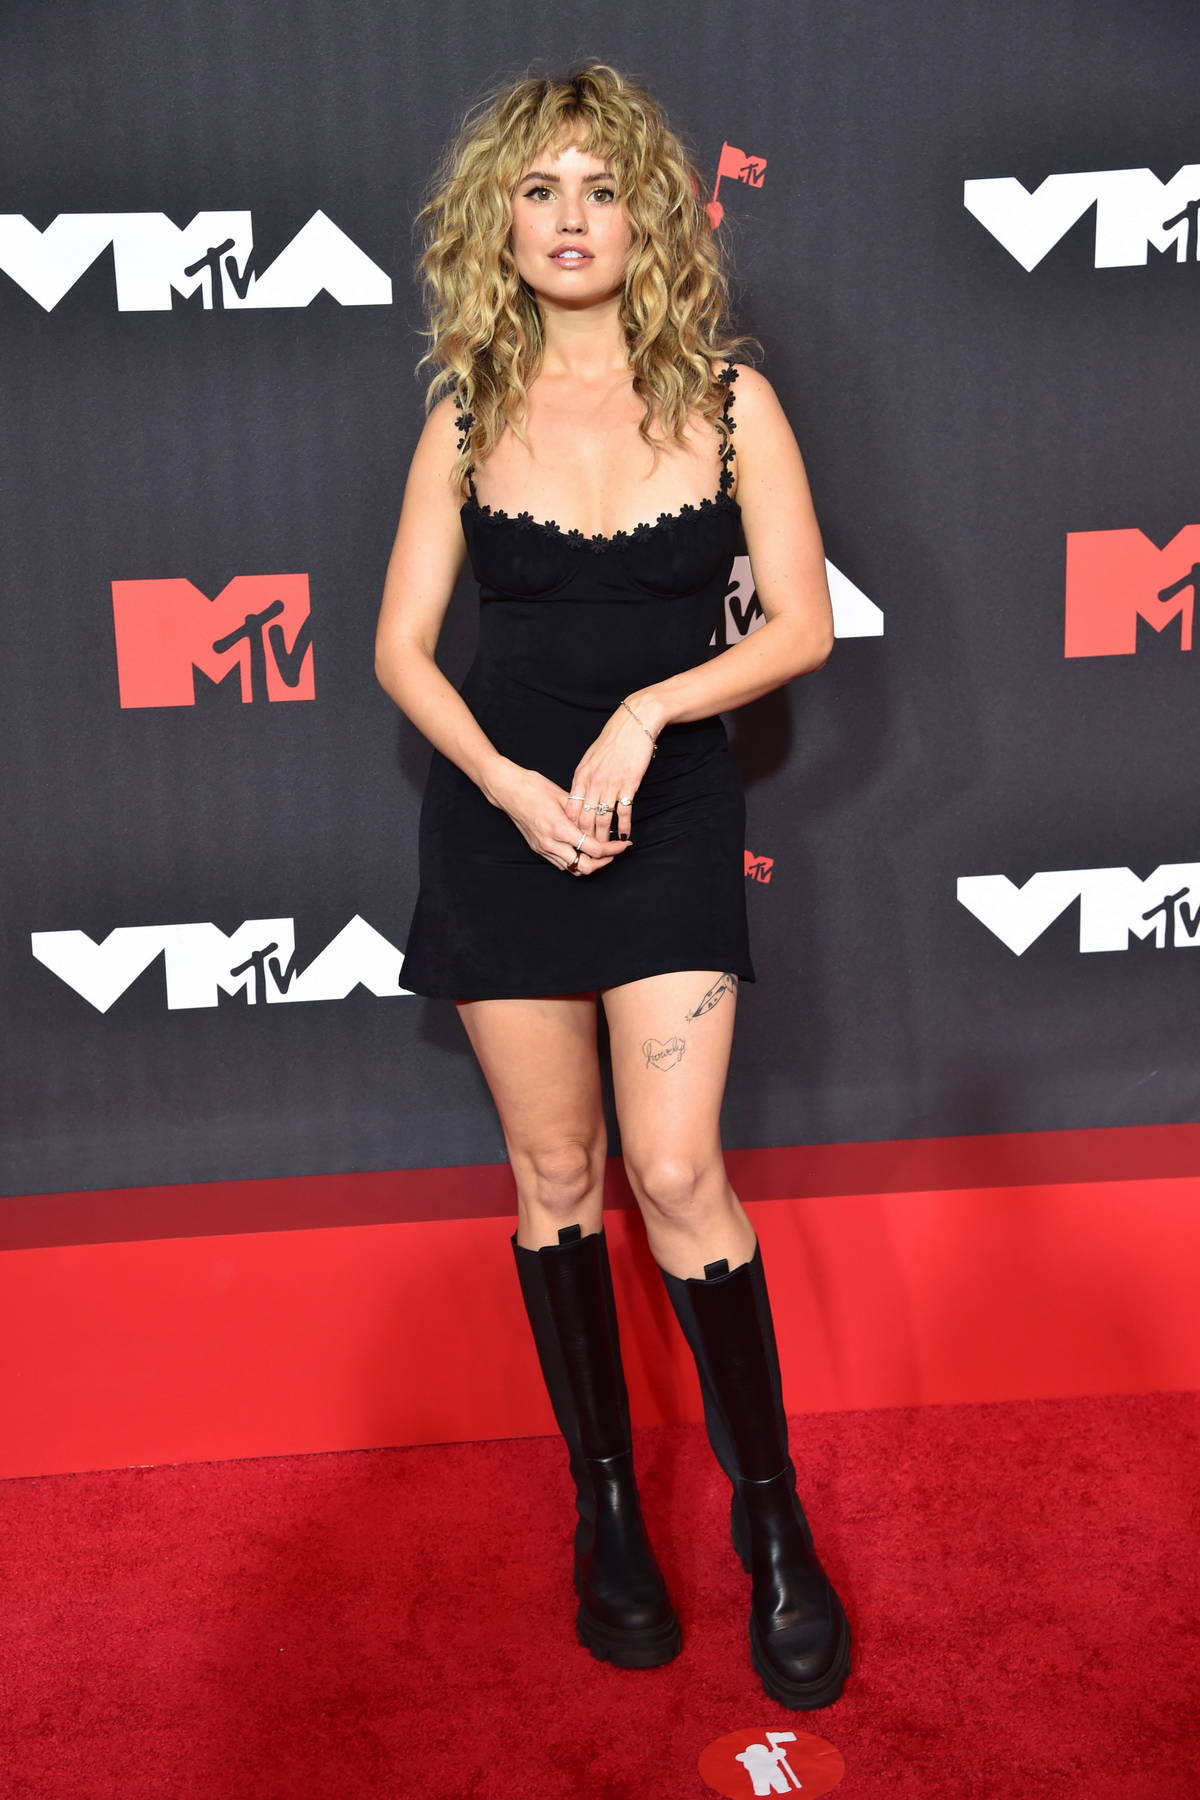 Debby Ryan attends the 2021 MTV Video Music Awards at Barclays Center in Brooklyn, New York City